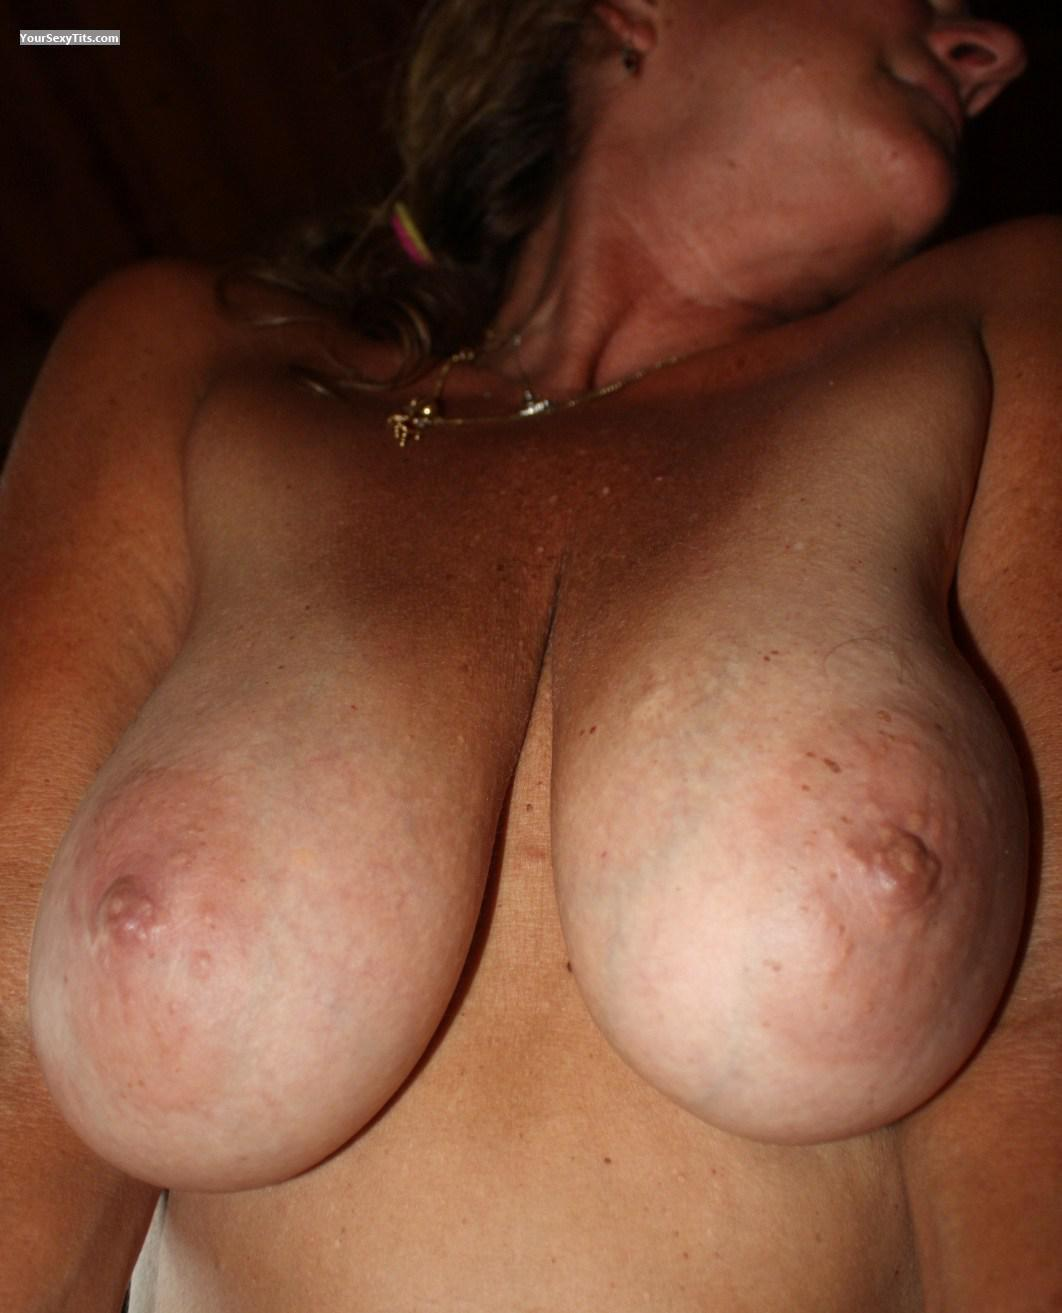 Tit Flash: Big Tits - Heidi from United States